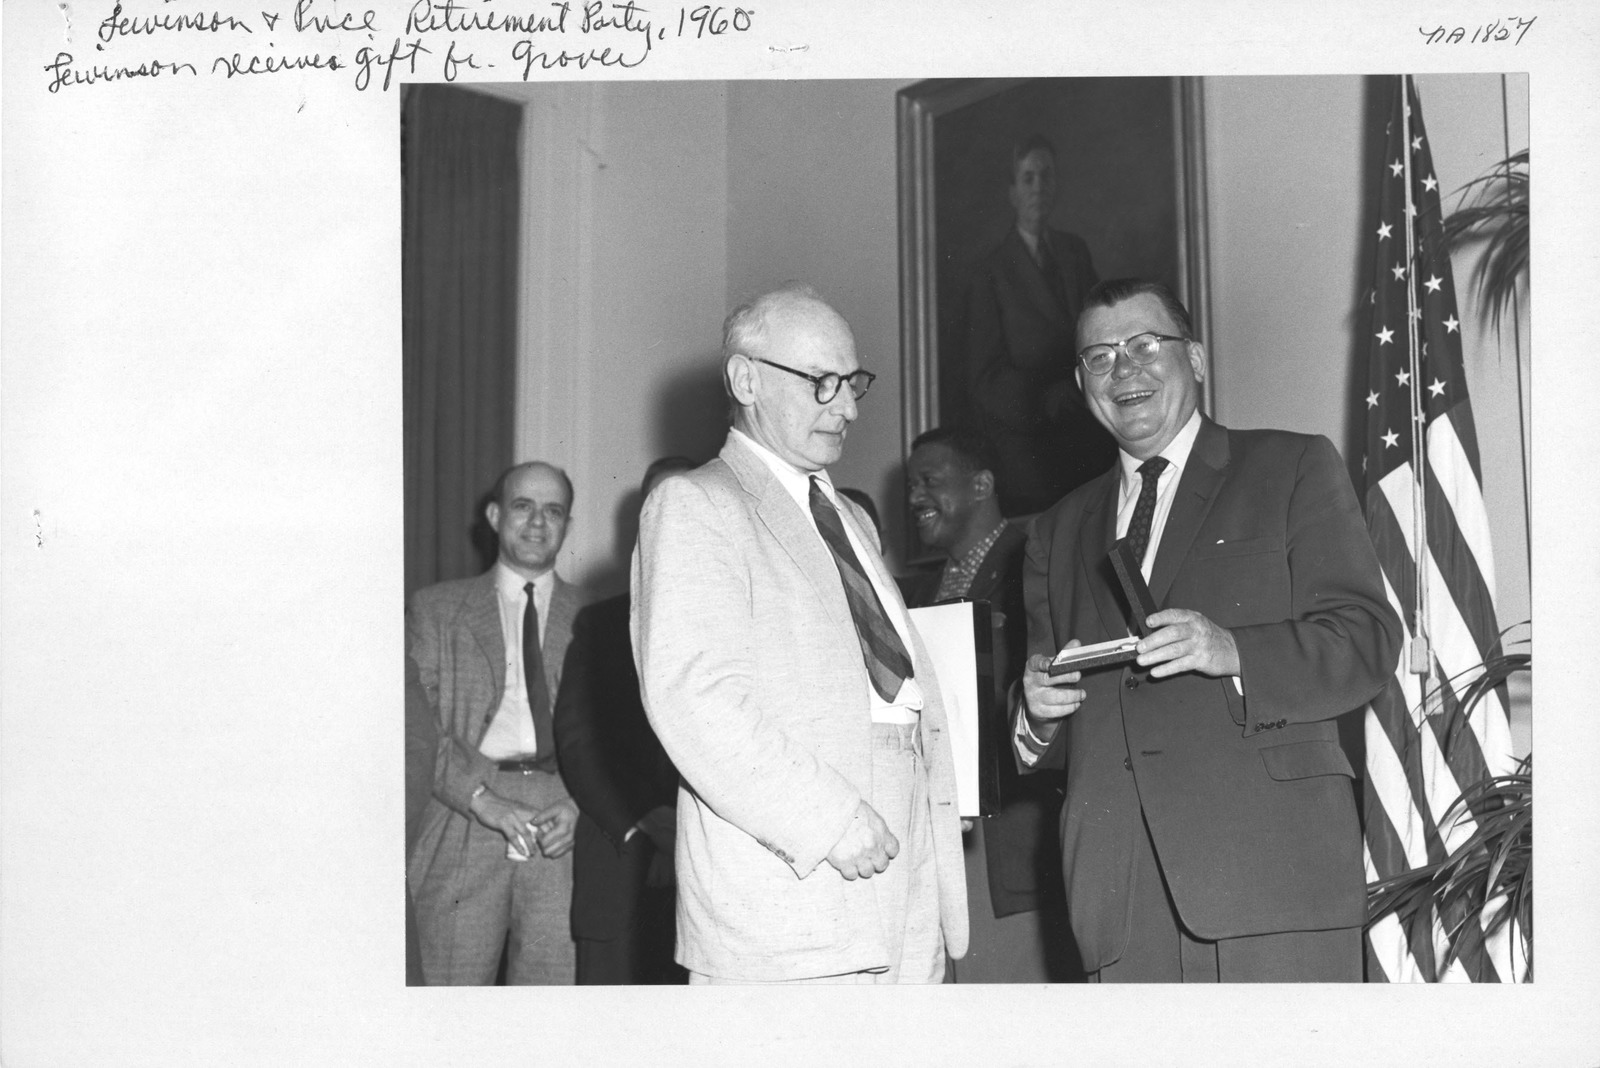 Photograph of Paul Lewinson and Marcus W. Price Retirement Party